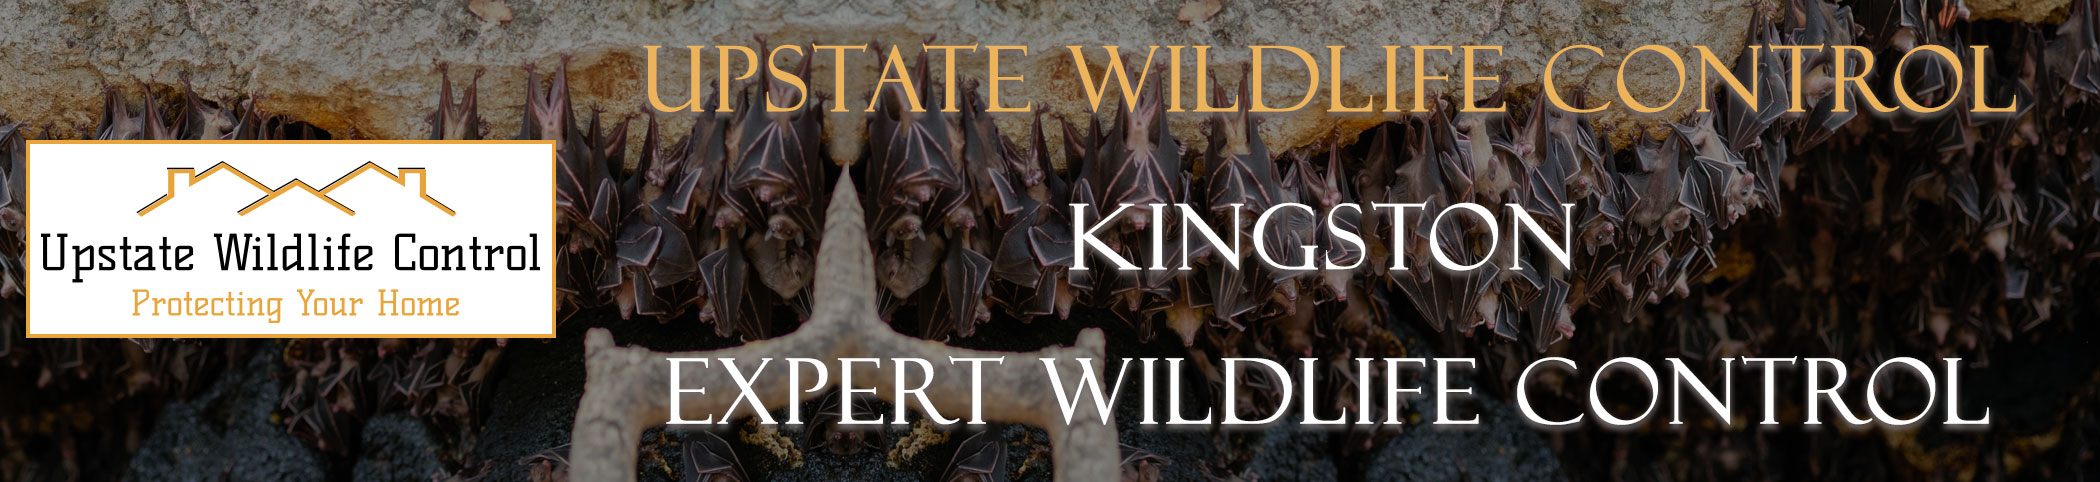 Upstate-Wildlife-Control-kingston-header